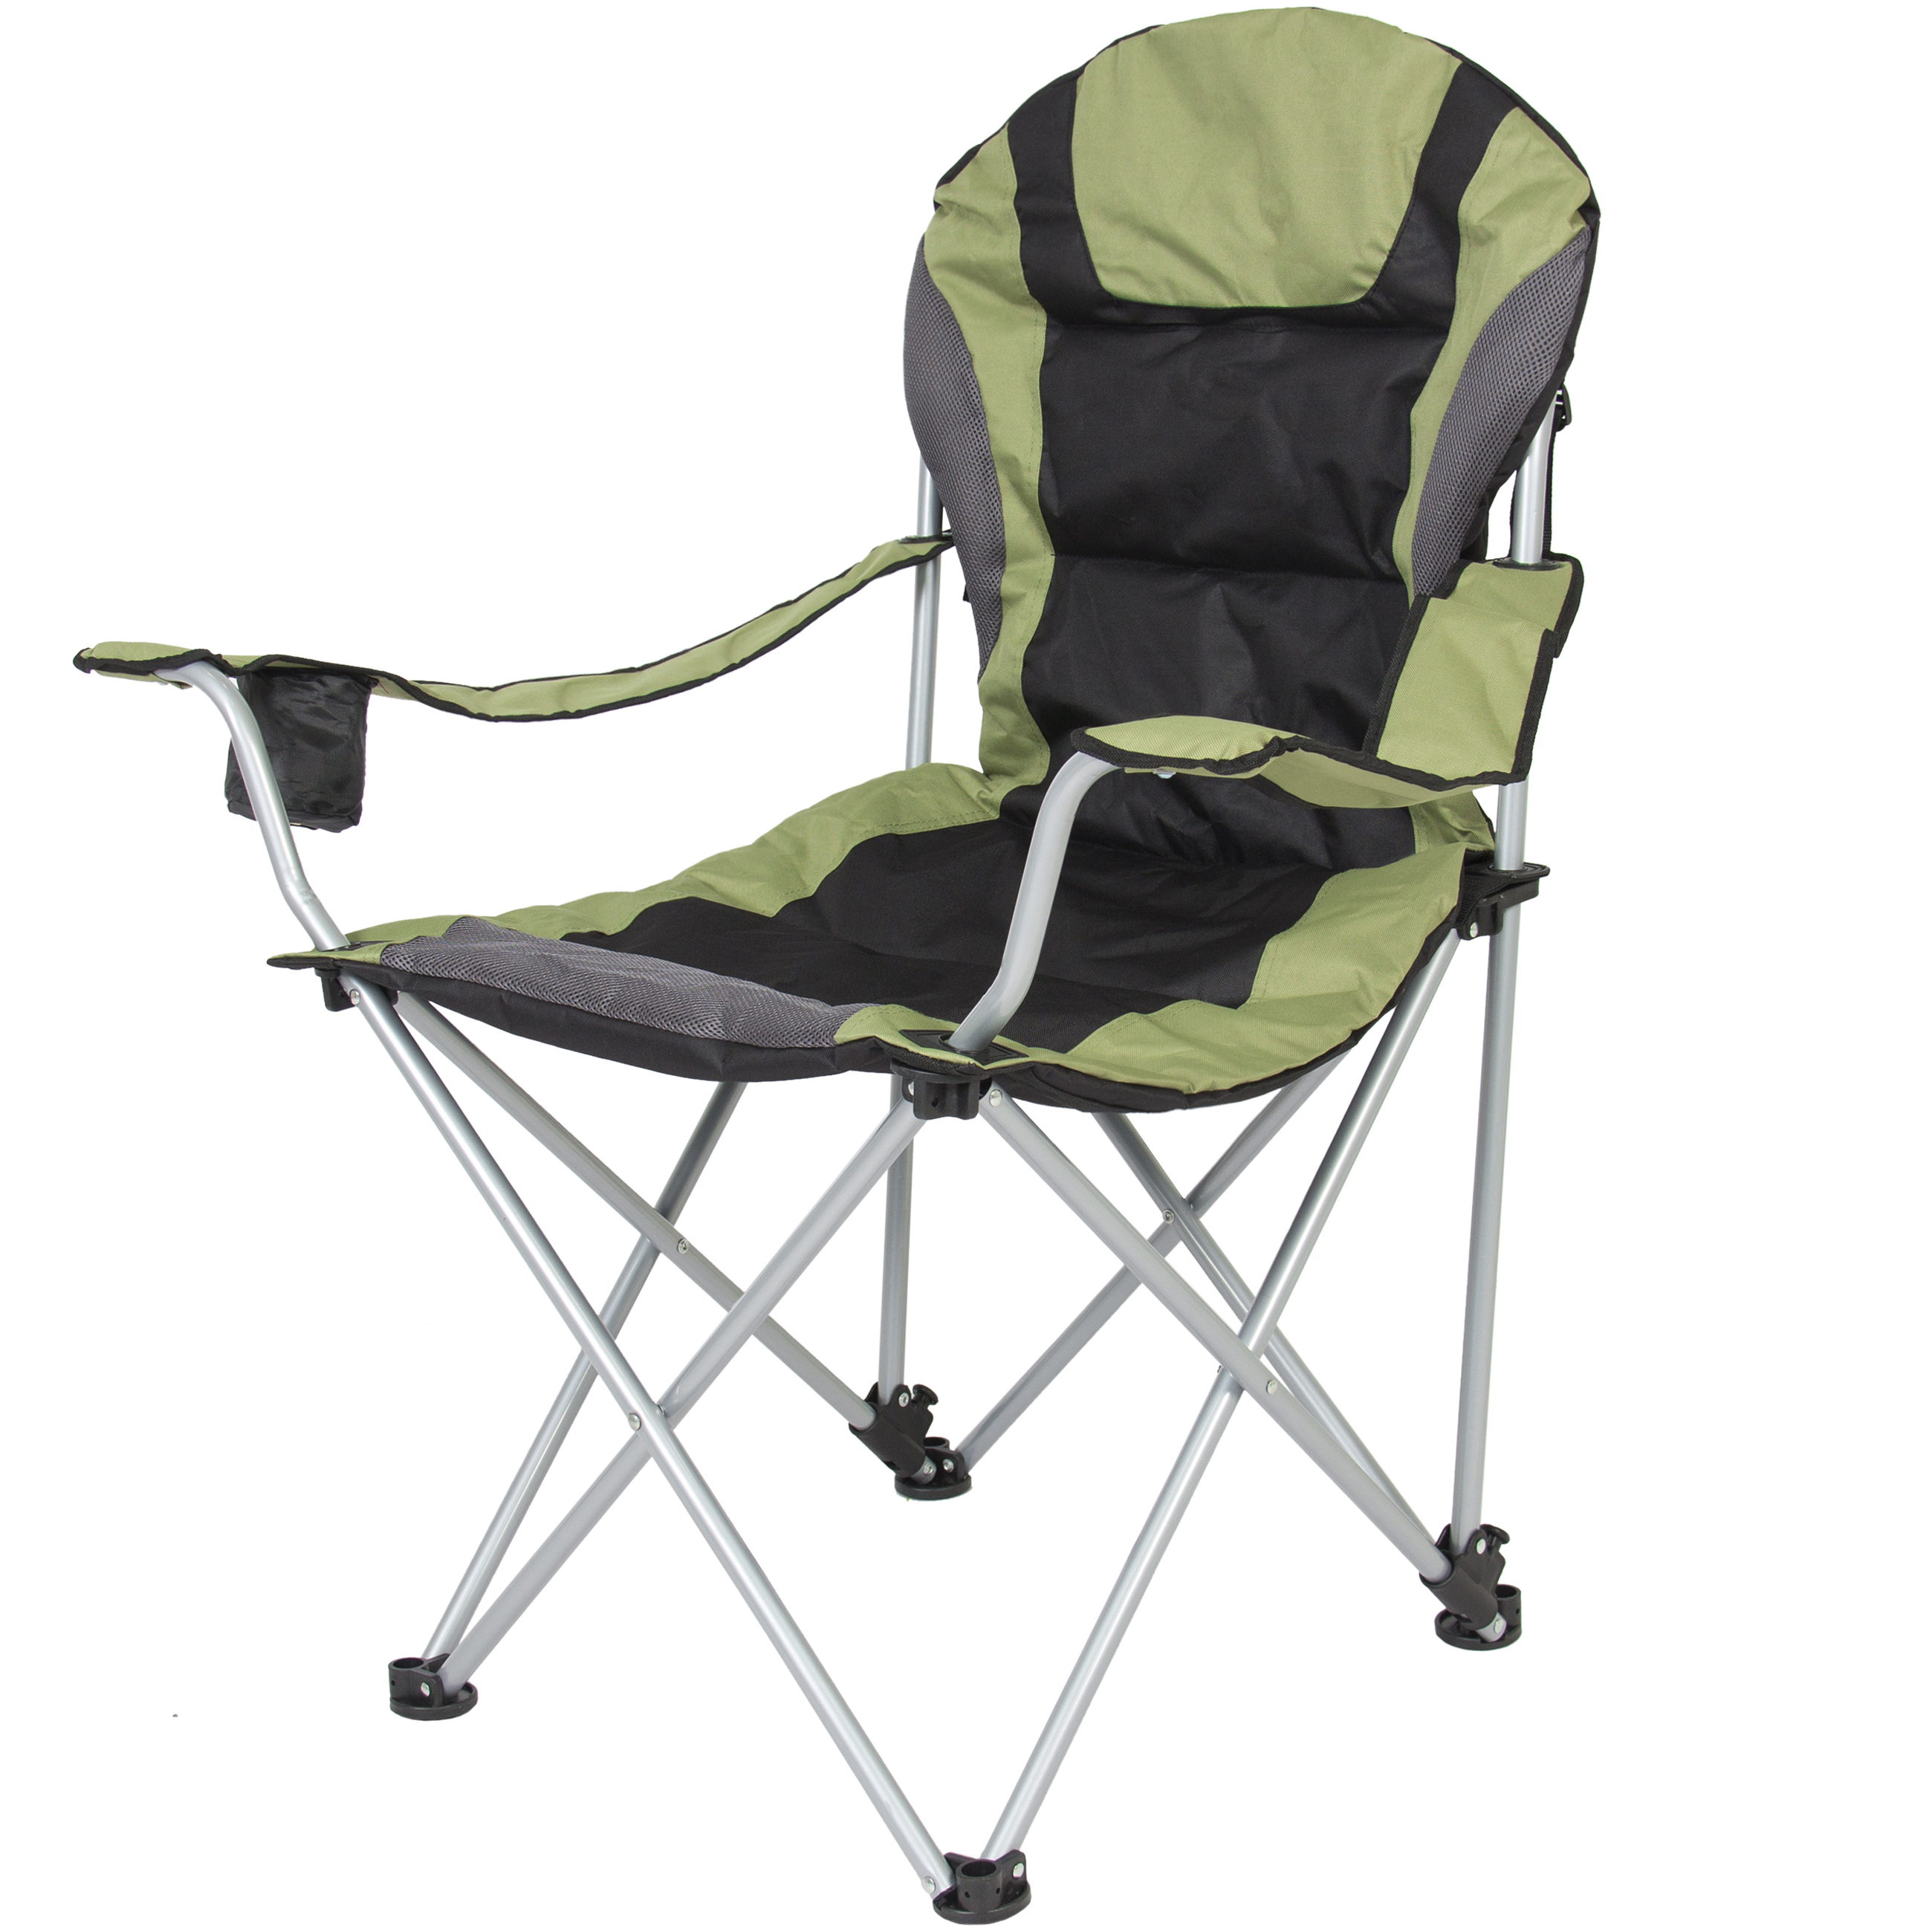 portable beach chair office description best choice products deluxe padded reclining camping fishing w carrying case green walmart com